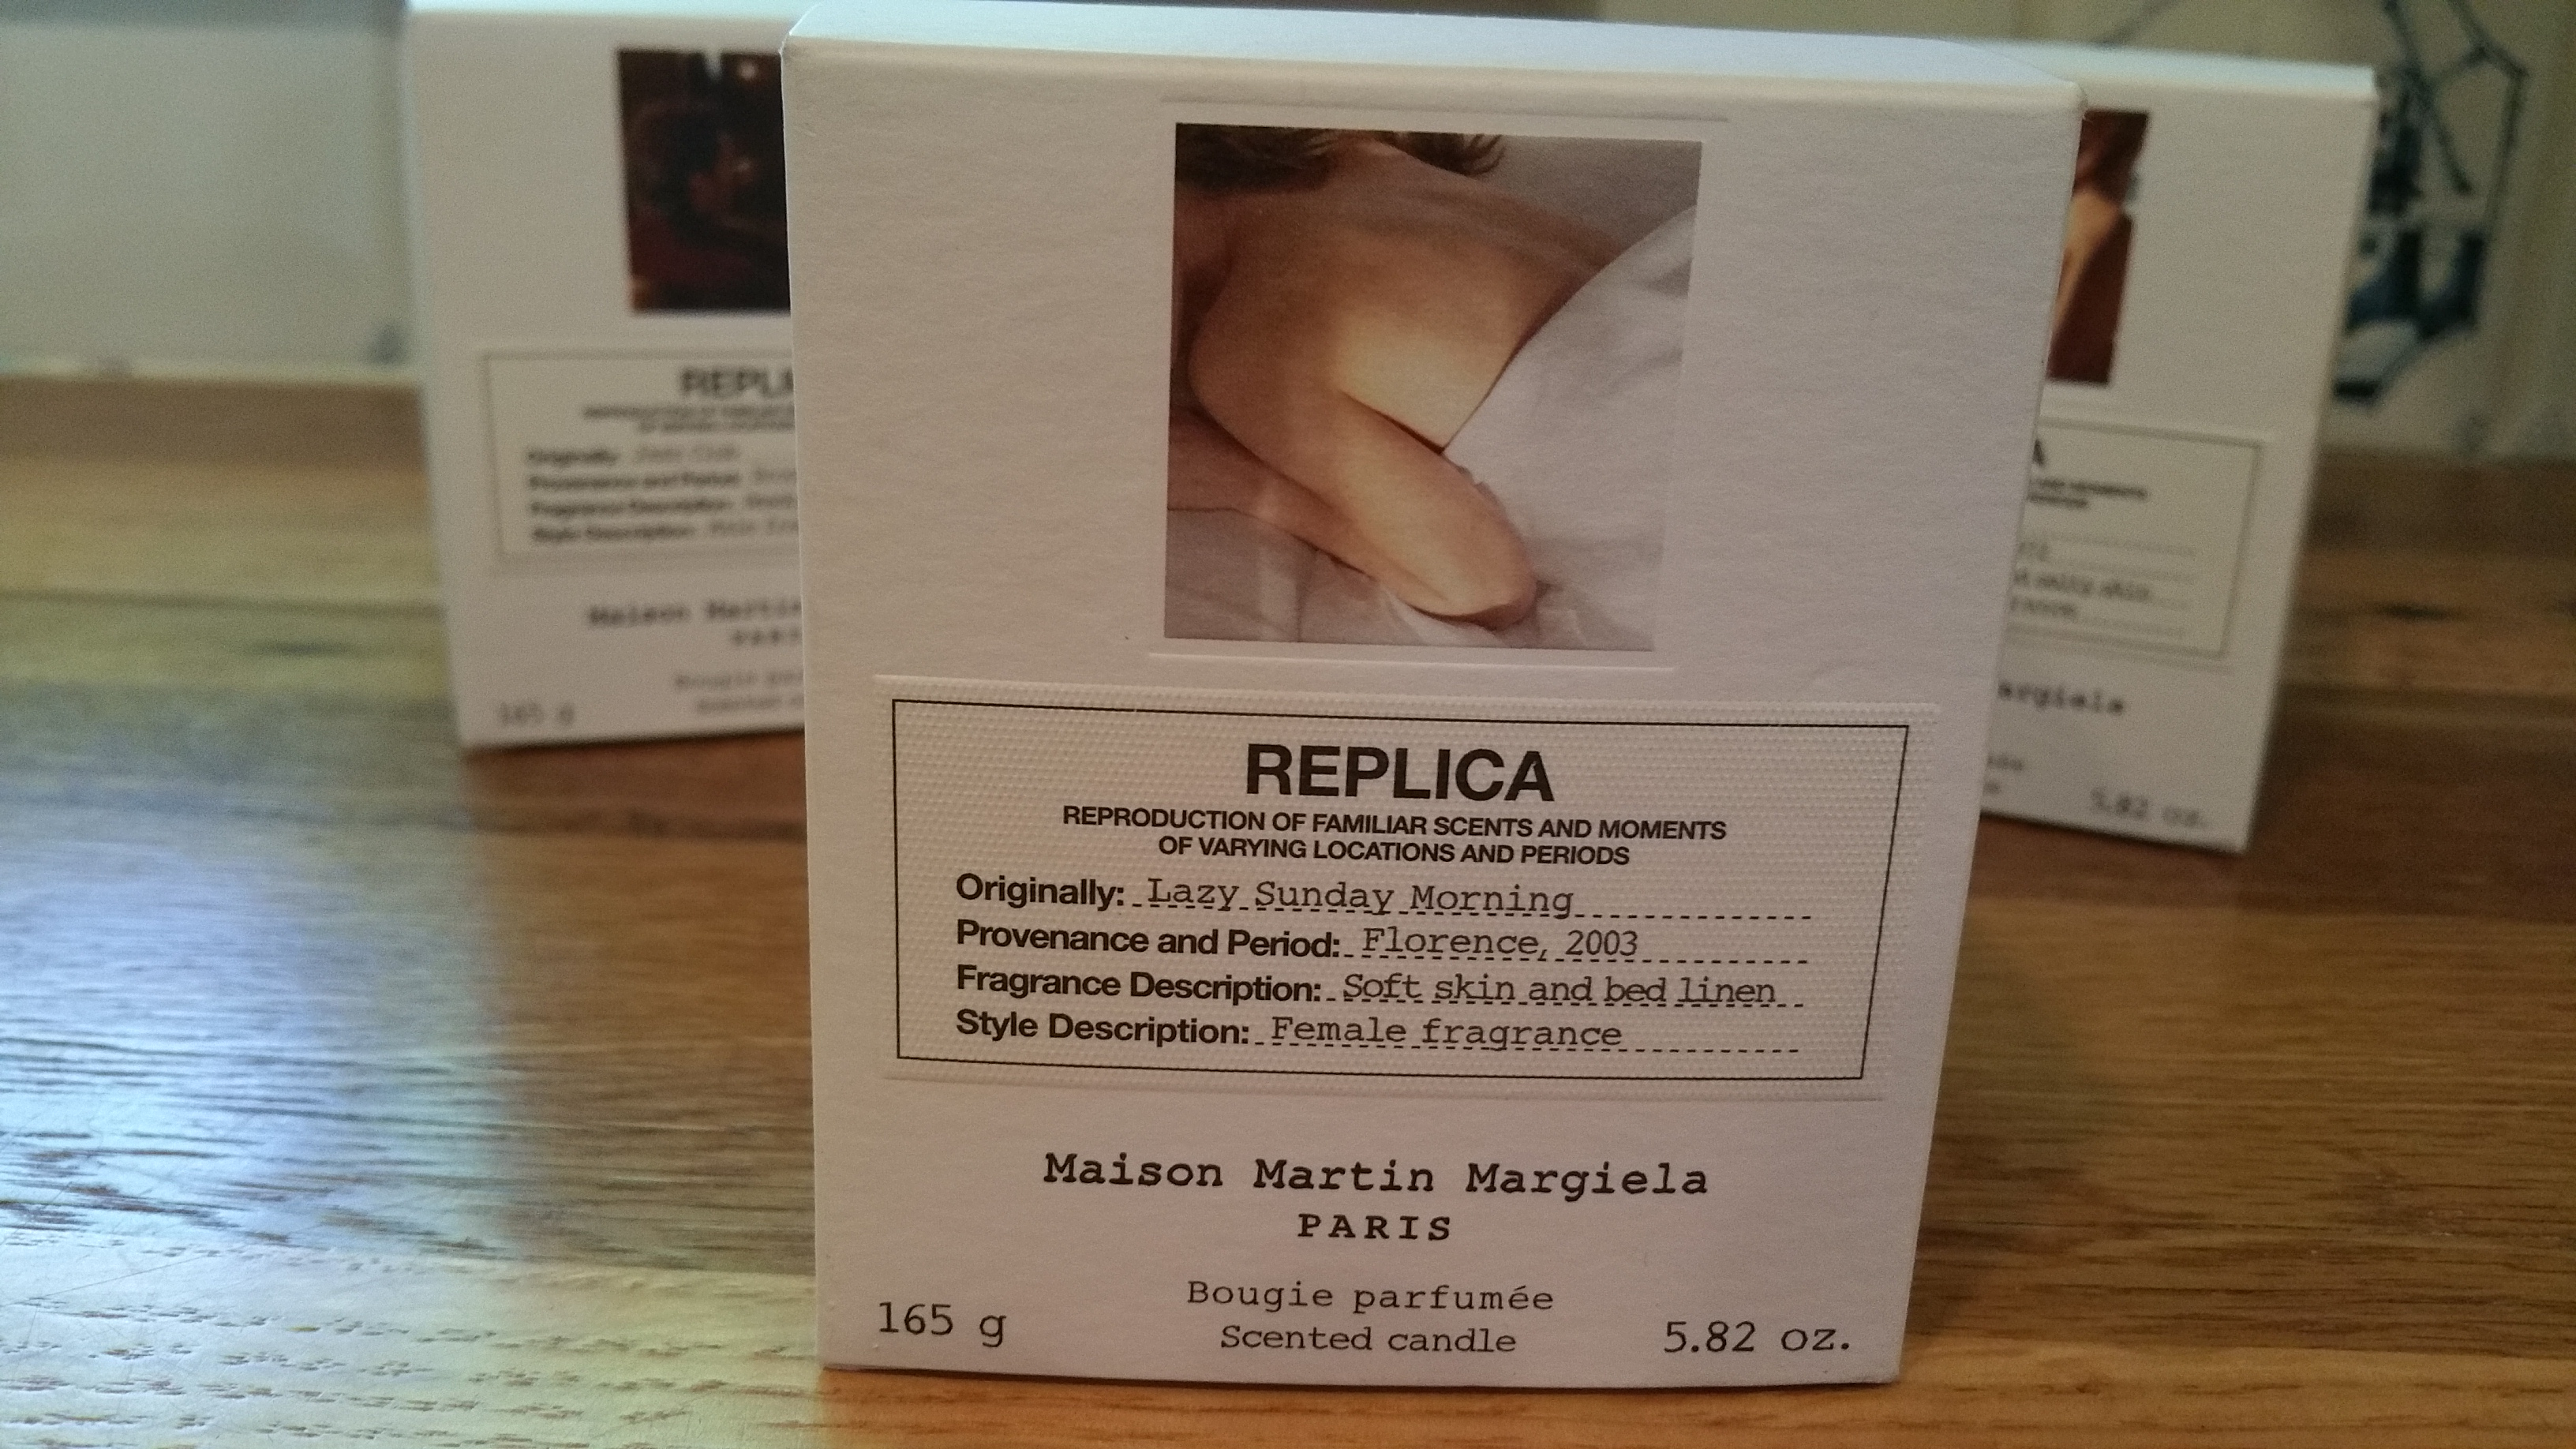 Replica by Maison Martin Margiela candles